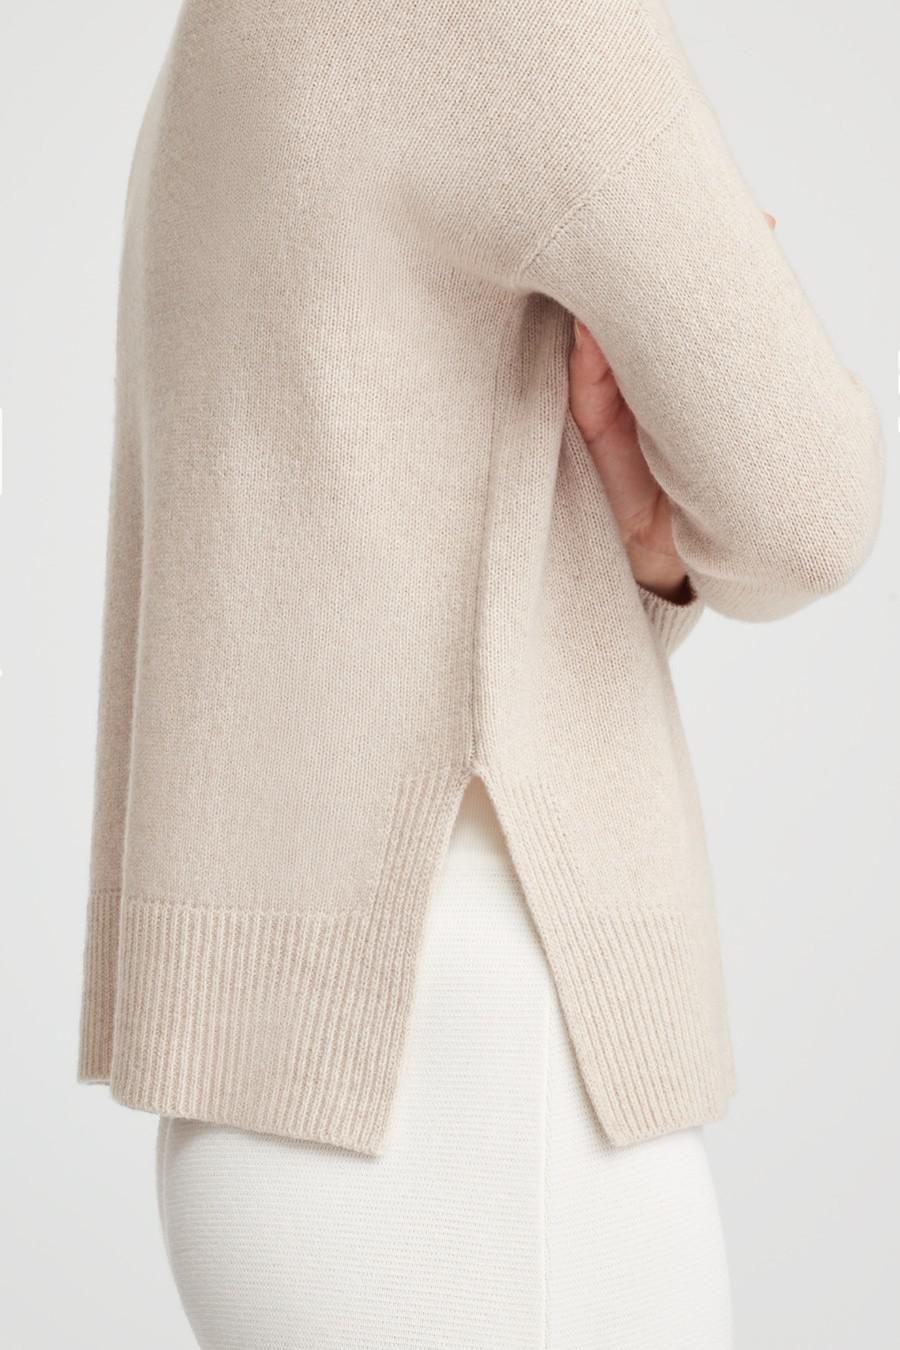 Women's Recycled Crewneck Sweater in Beige | Size: 3